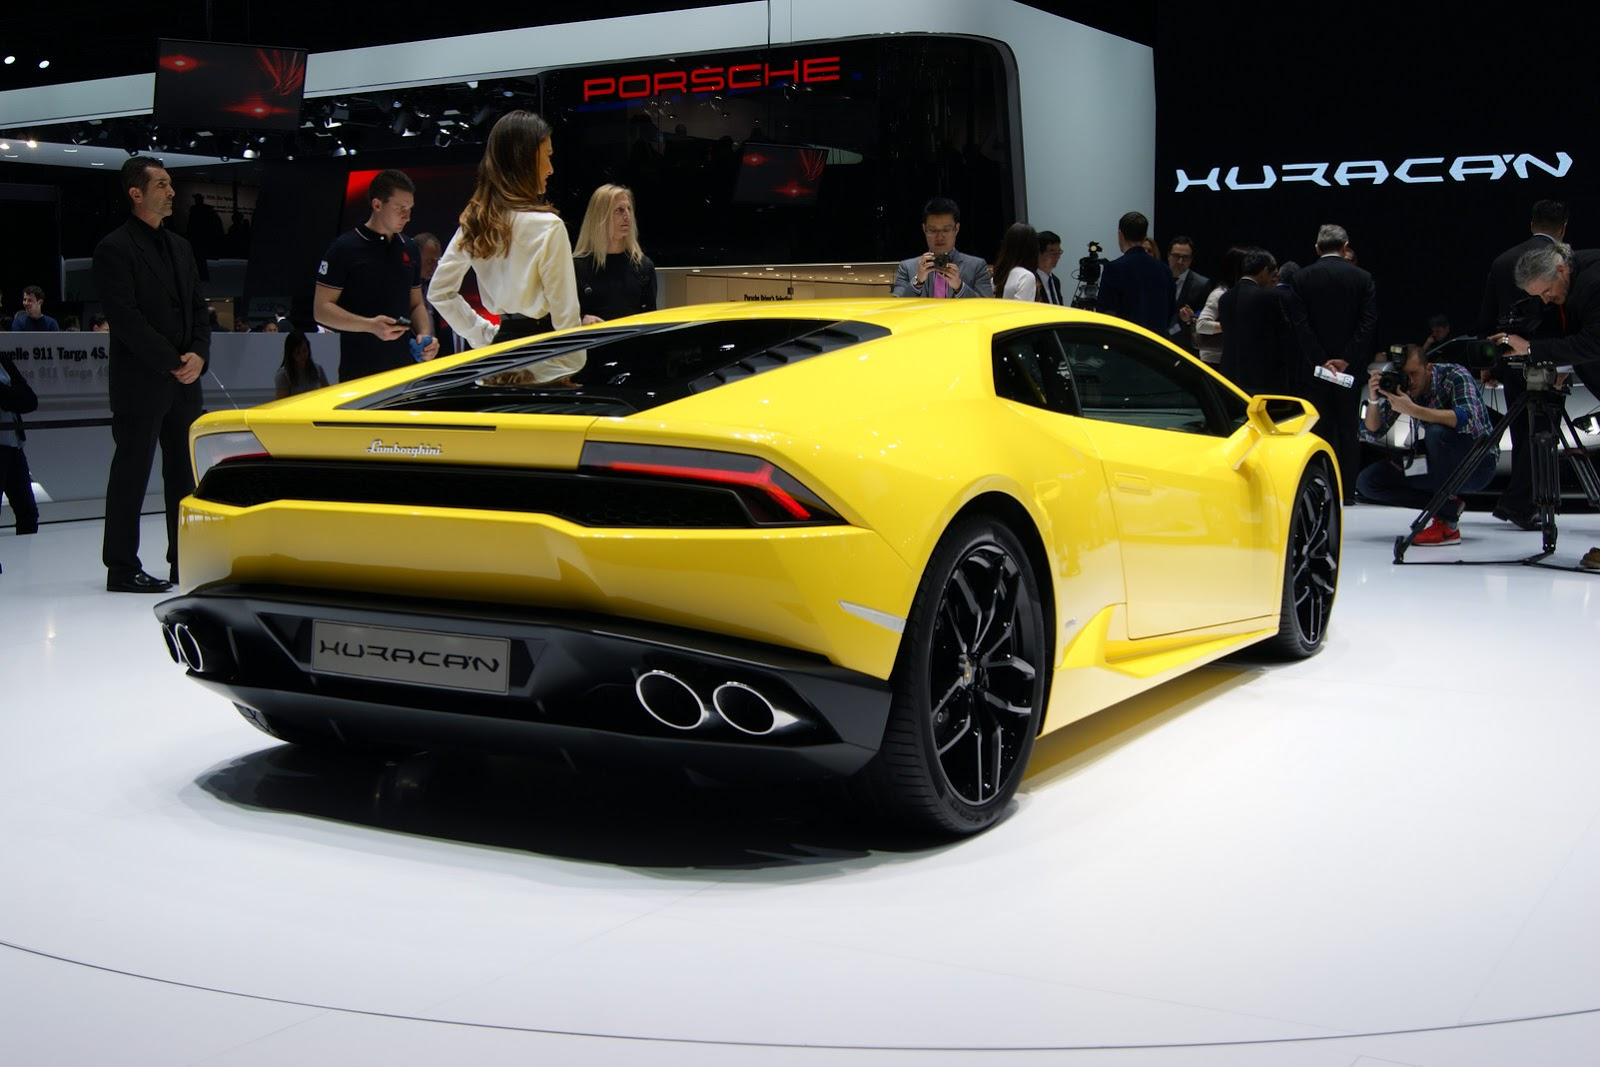 lamborghini huracan lp610 4 makes it official in geneva video fooyoh entertainment. Black Bedroom Furniture Sets. Home Design Ideas